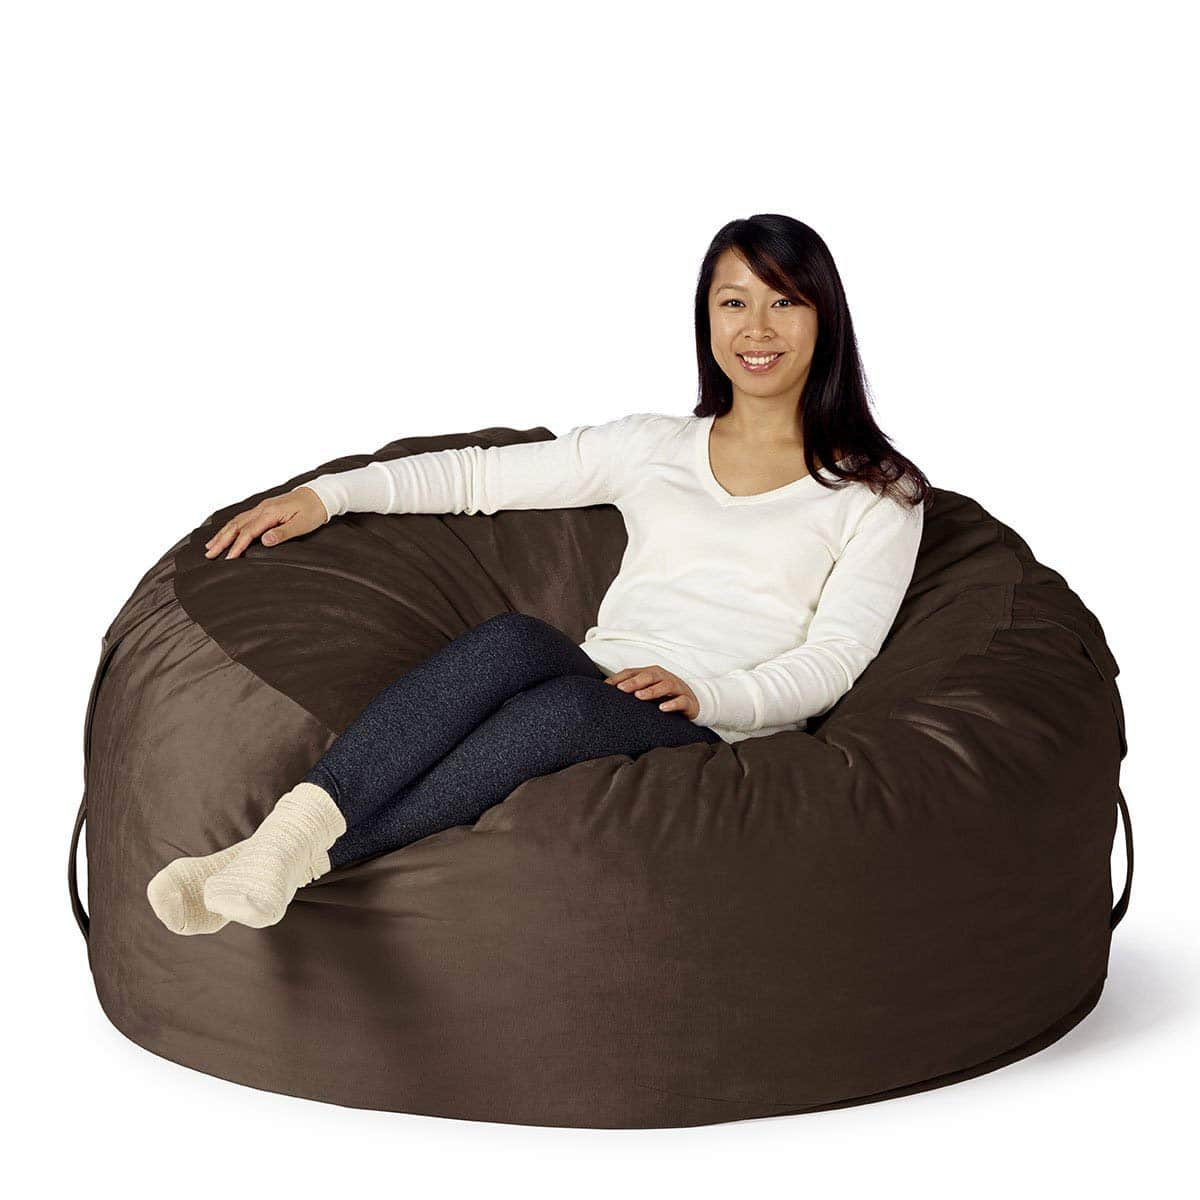 best bean bag chairs top 10 bean bag brands and reviews. Black Bedroom Furniture Sets. Home Design Ideas